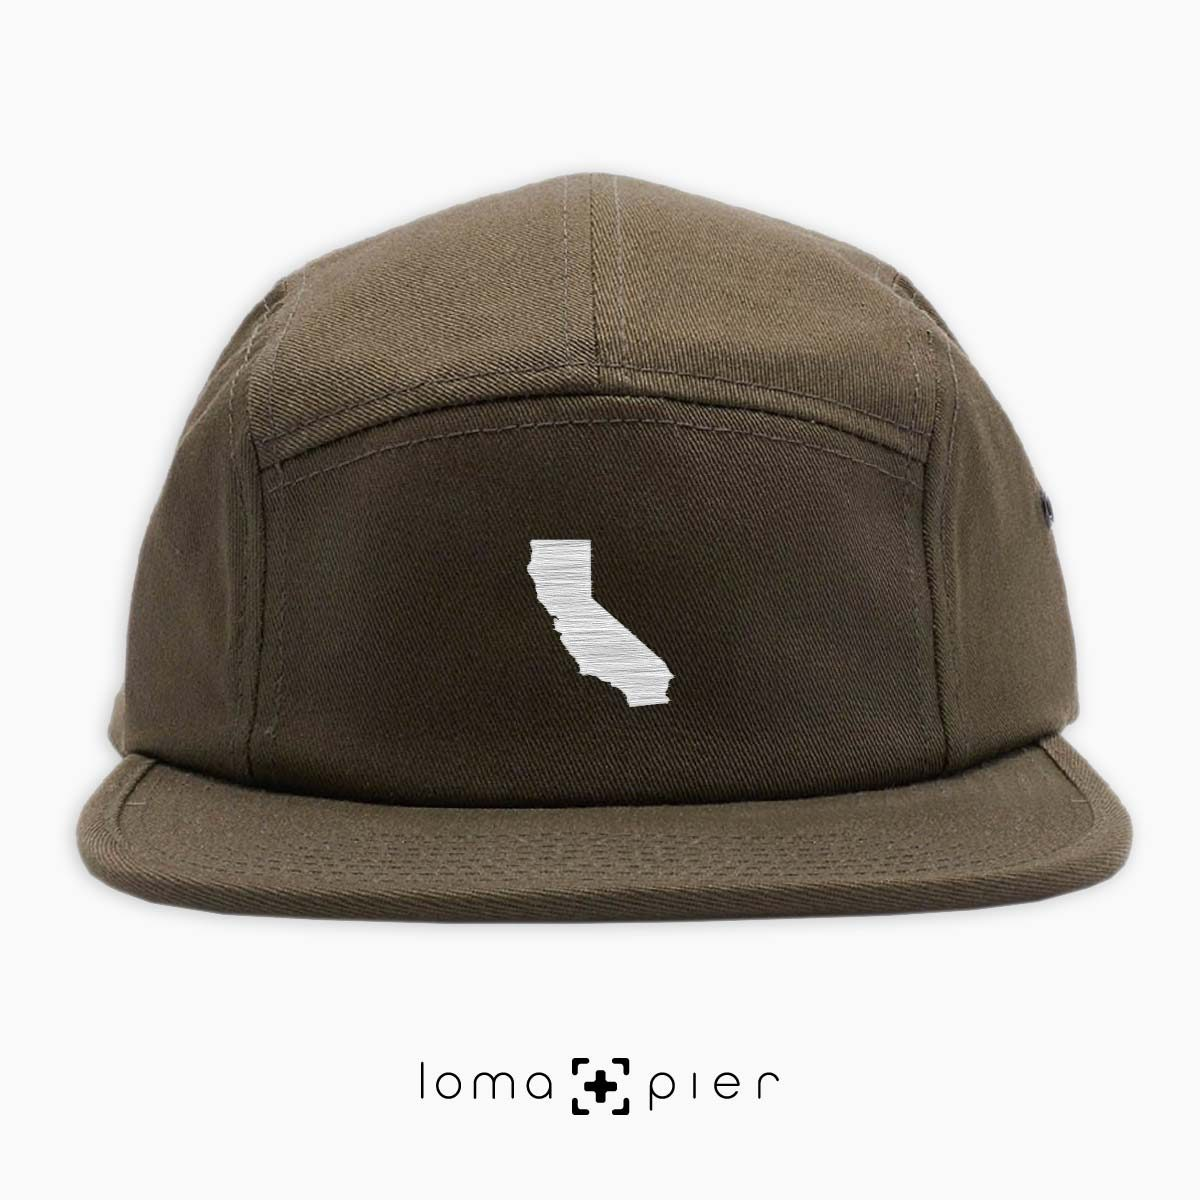 CALIFORNIA silhouette icon embroidered on an olive green cotton 5-panel hat by loma+pier hat store